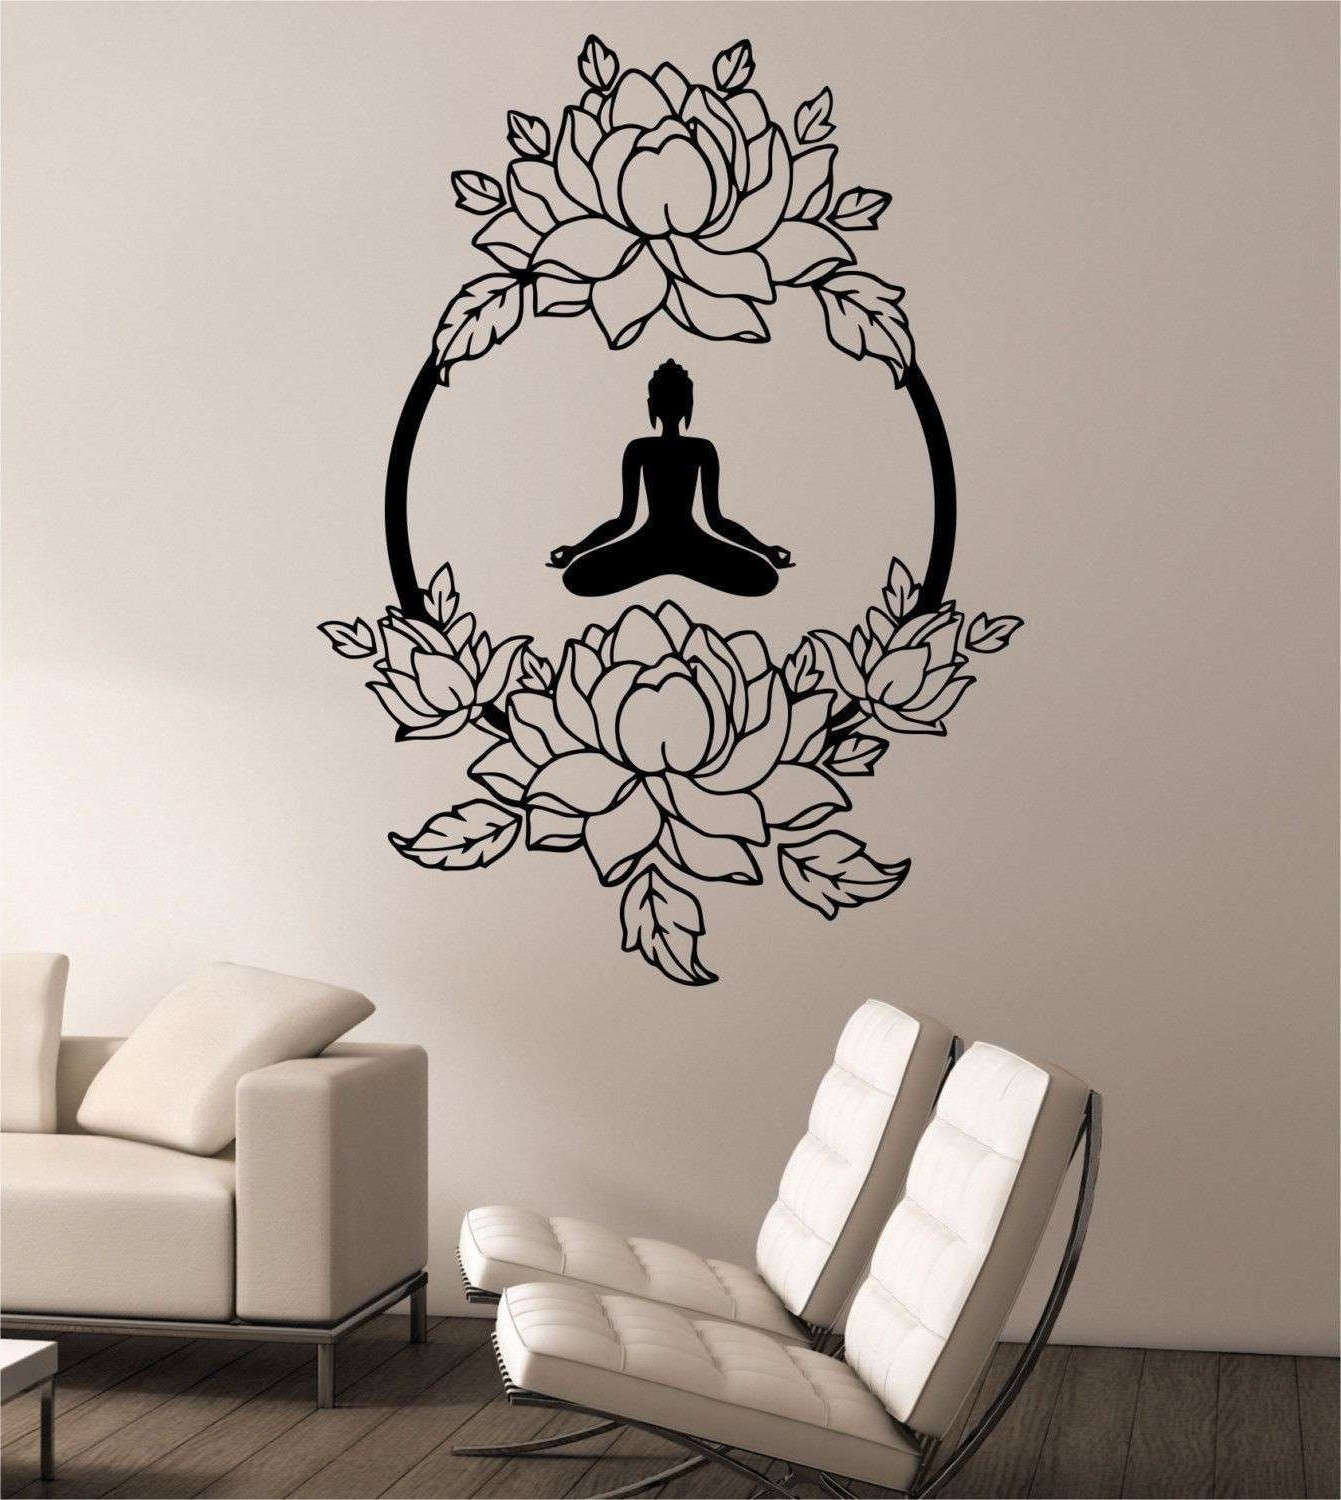 Cool Wall Art For Bedroom Fresh Wall Decal Luxury 1 Kirkland Wall Within Trendy Cool Wall Art (View 9 of 15)